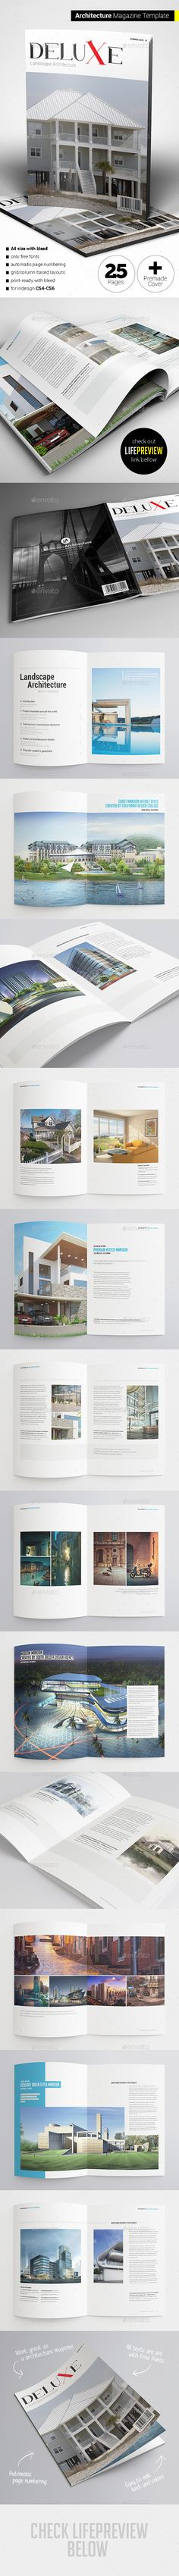 Architecture Magazine — InDesign INDD #layout #editorial • Available here → https://graphicriver.net/item/architecture-magazine/11239258?ref=pxcr